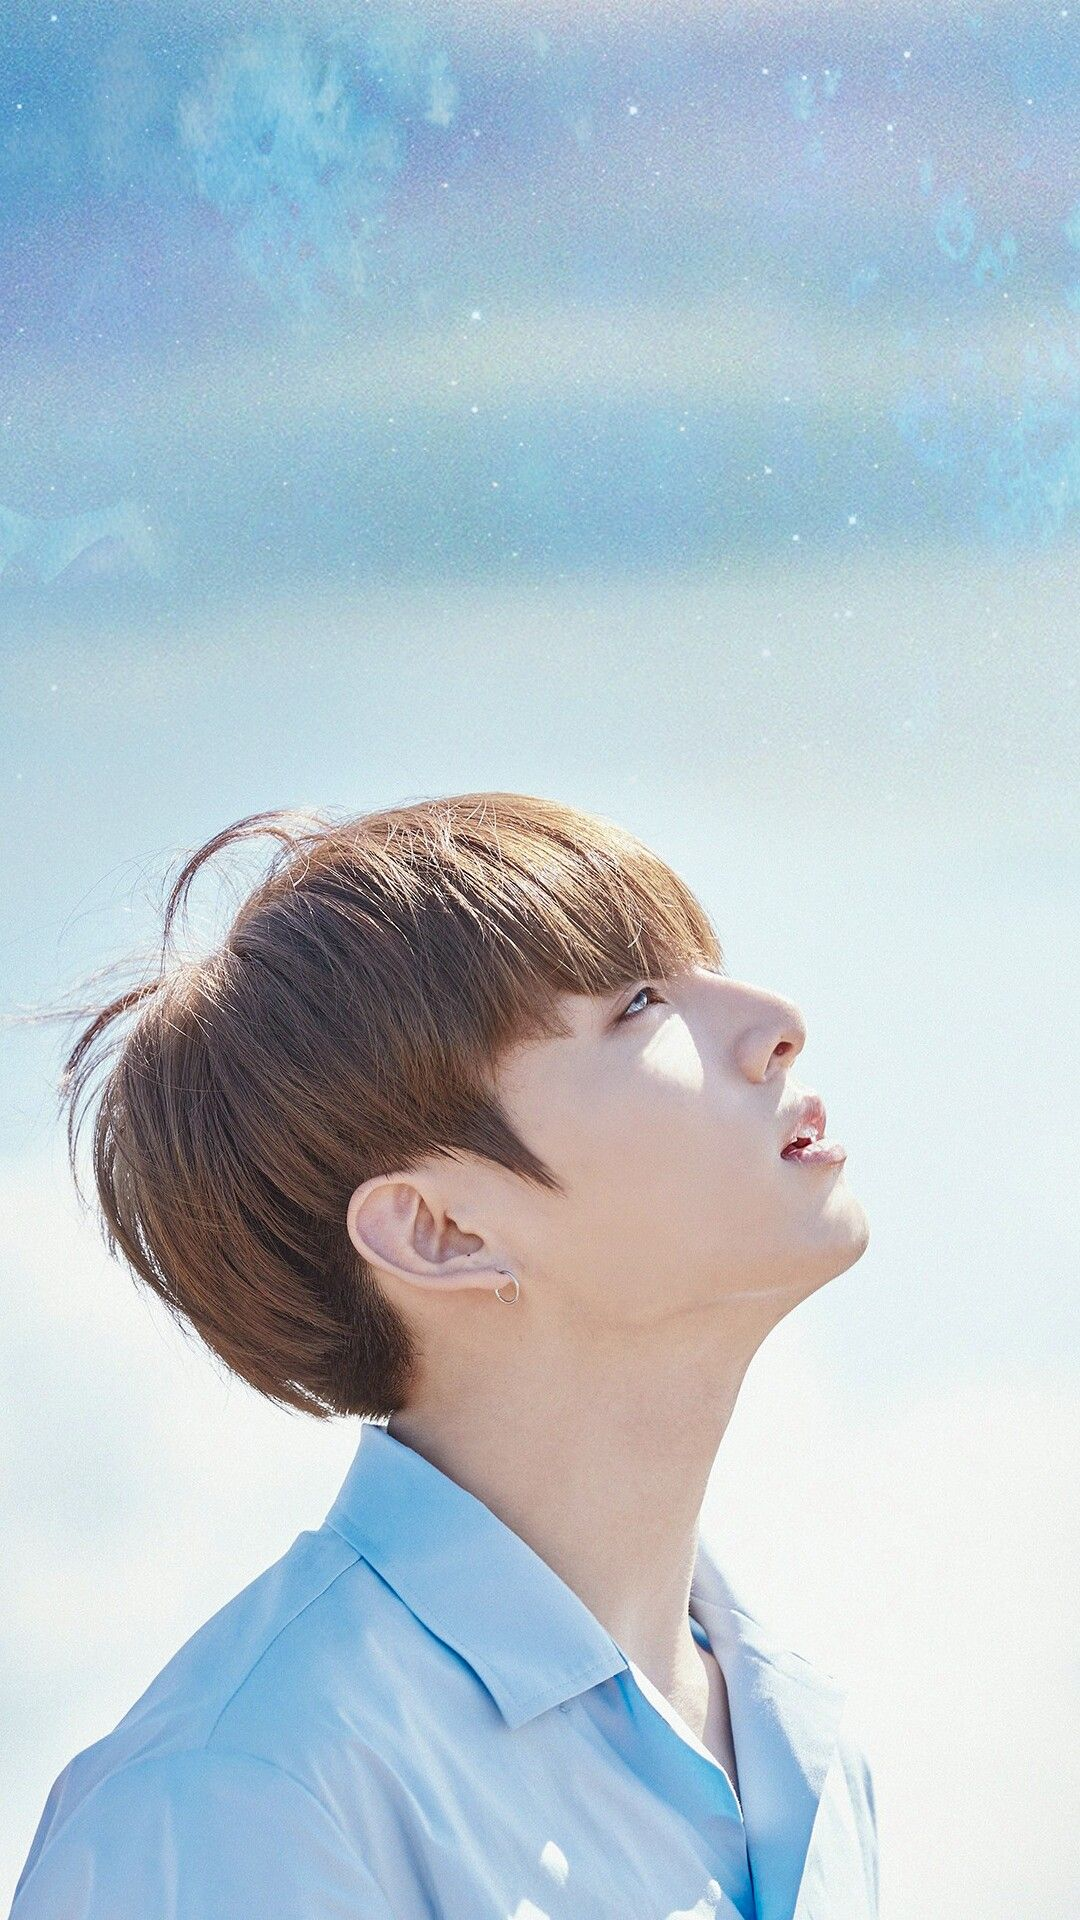 Bts Jungkook Wallpapers Top Free Bts Jungkook Backgrounds